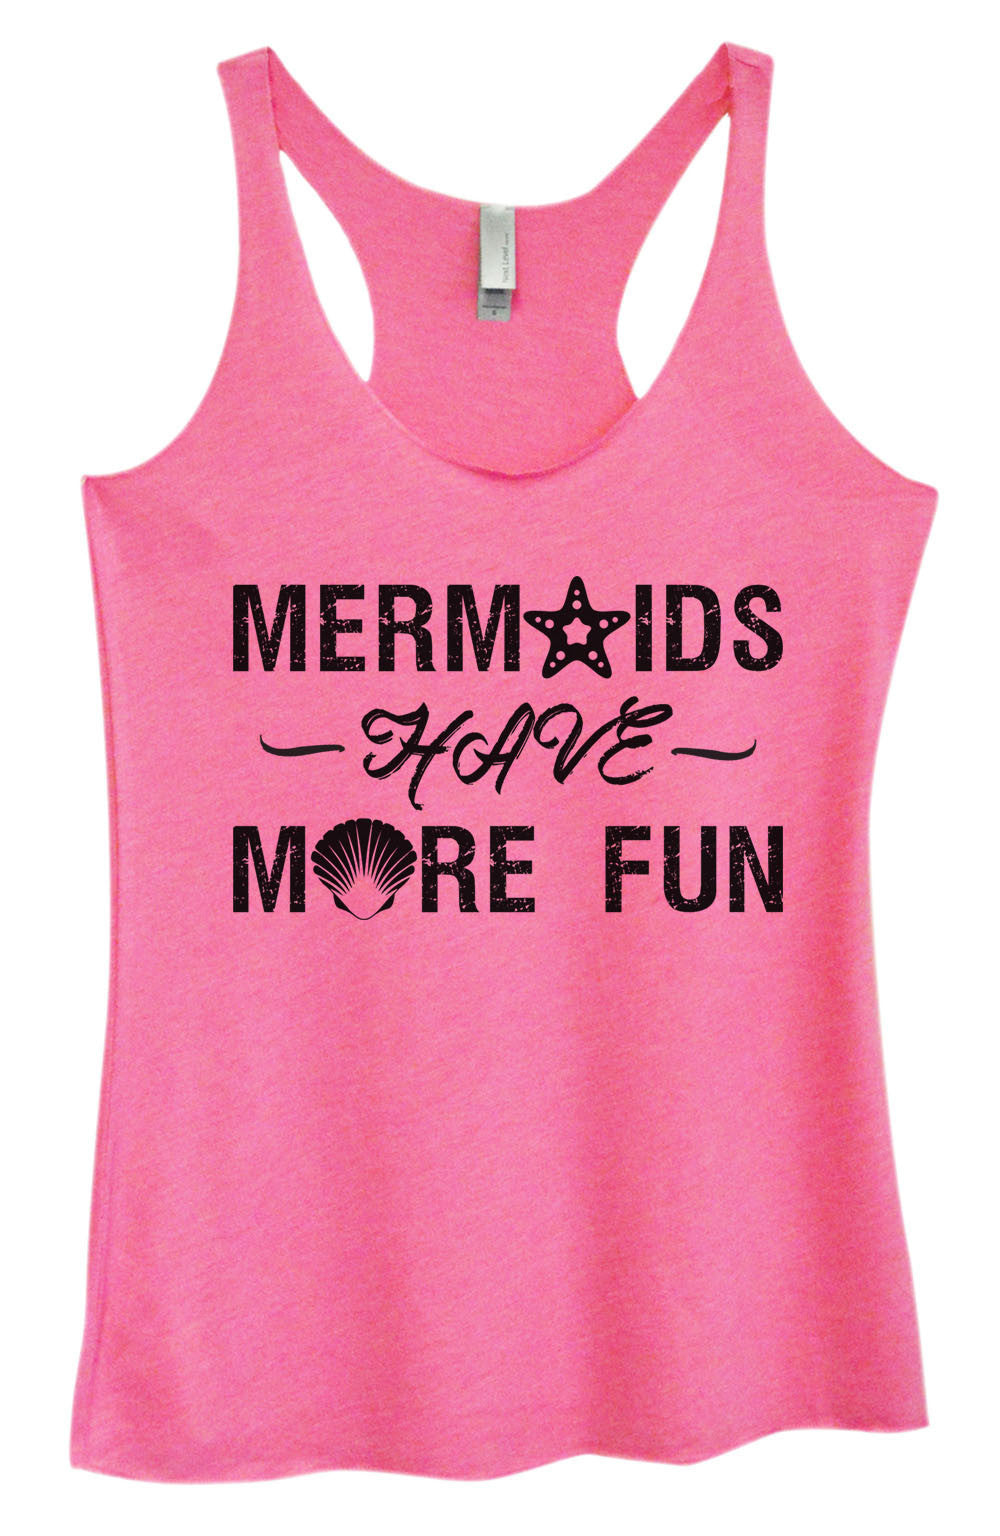 Womens Fashion Triblend Tank Top - Mermaids Have More Fun - Tri-1468 - Funny Shirts Tank Tops Burnouts and Triblends  - 4